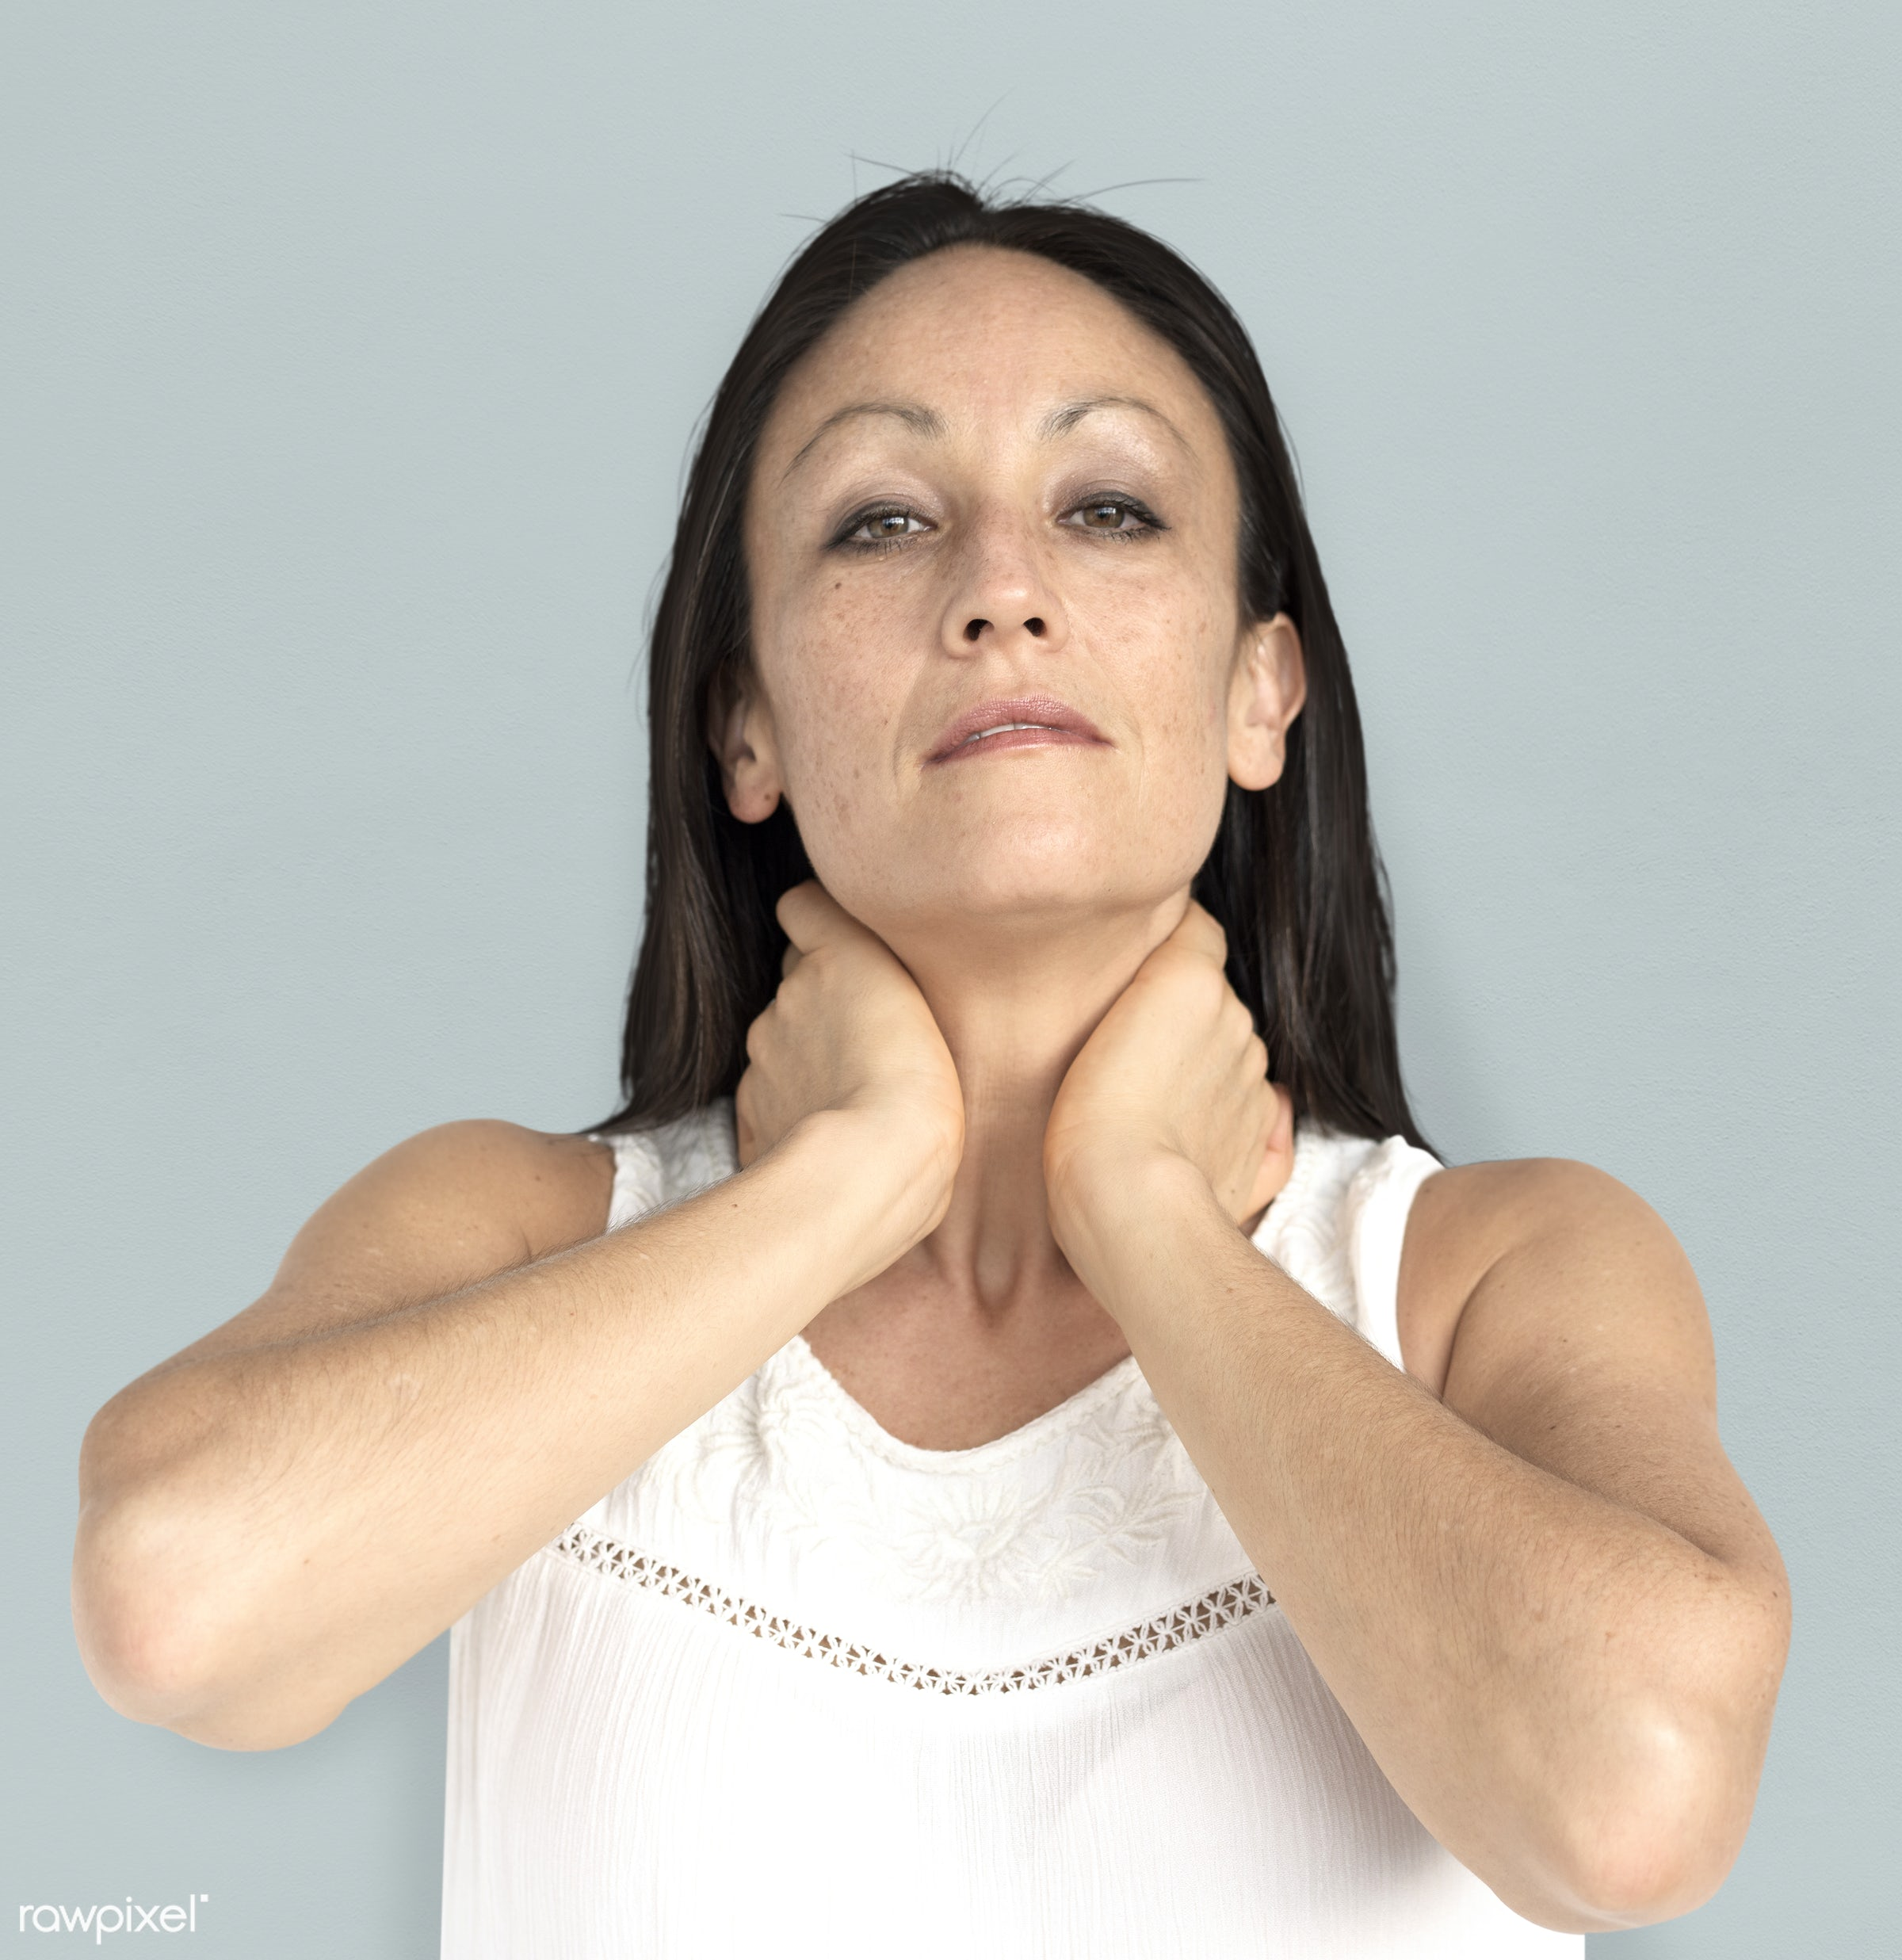 studio, model, person, neck pain, people, race, style, solo, woman, casual, lifestyle, feminism, isolated, gesture, posing,...